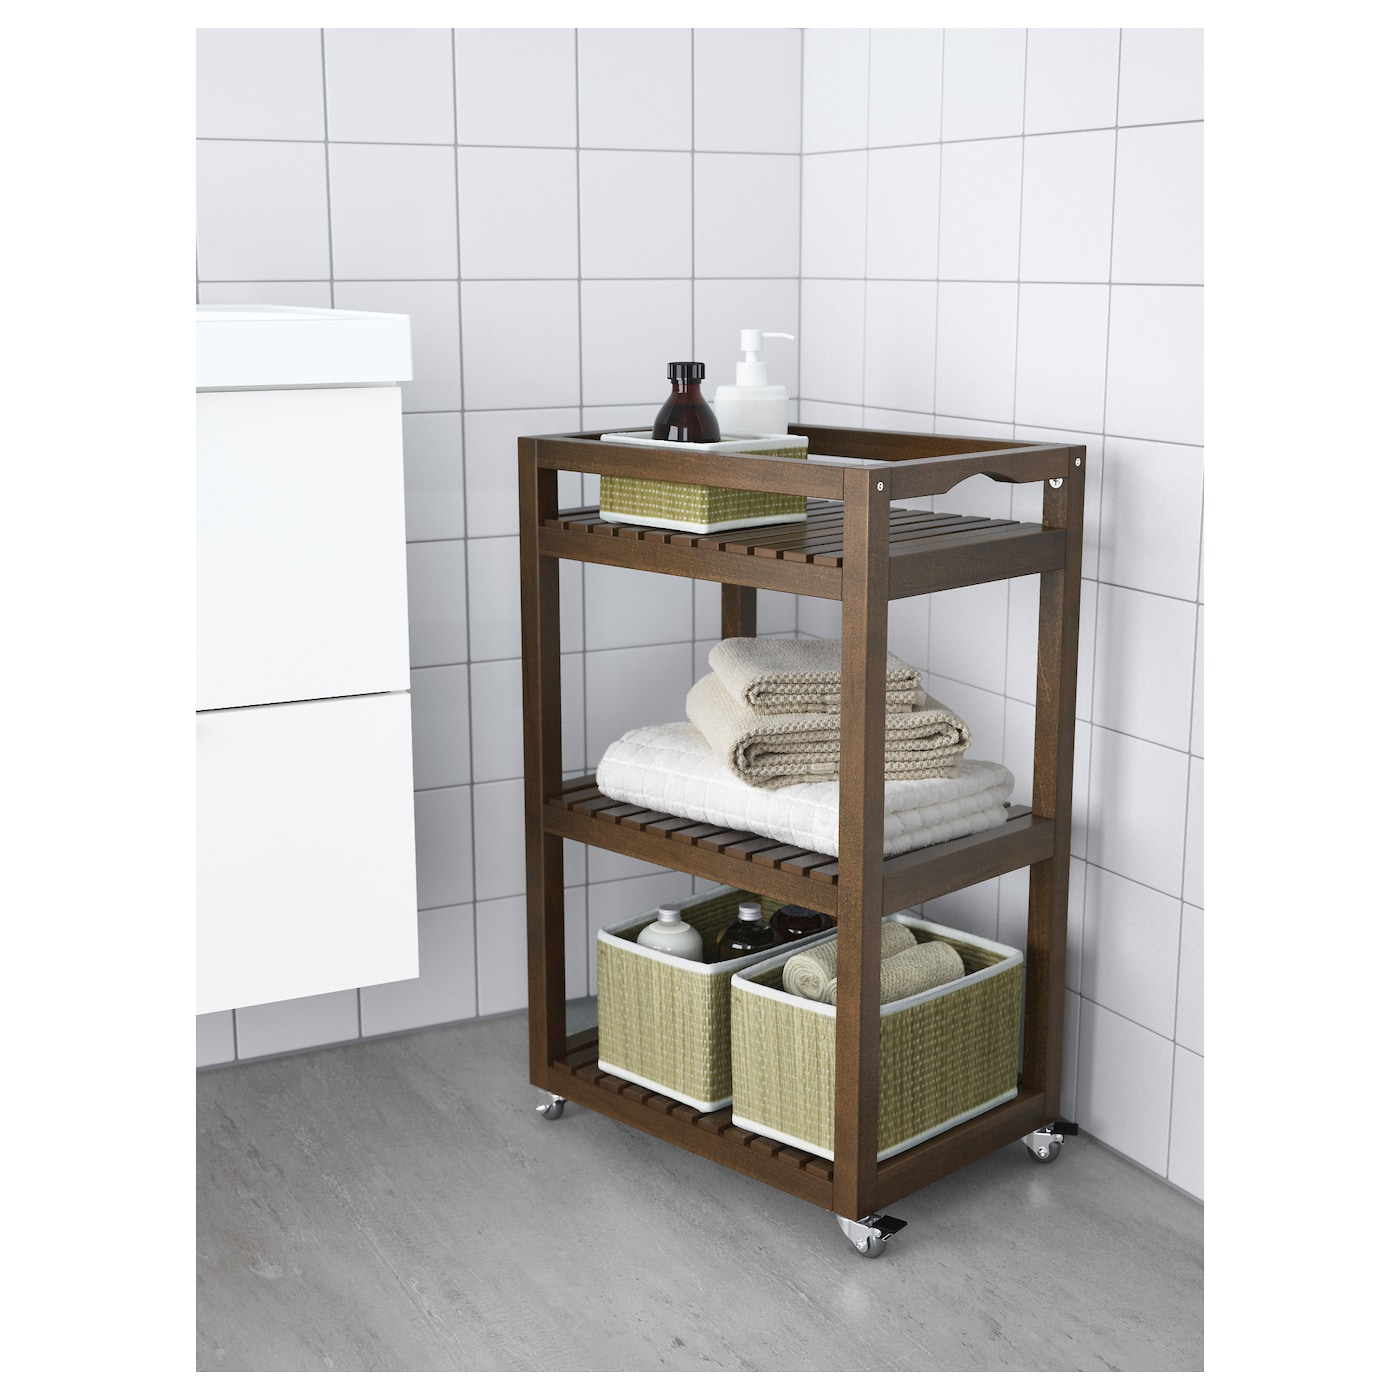 Molger trolley dark brown 33x47x76 cm ikea for Contenitori ikea bagno